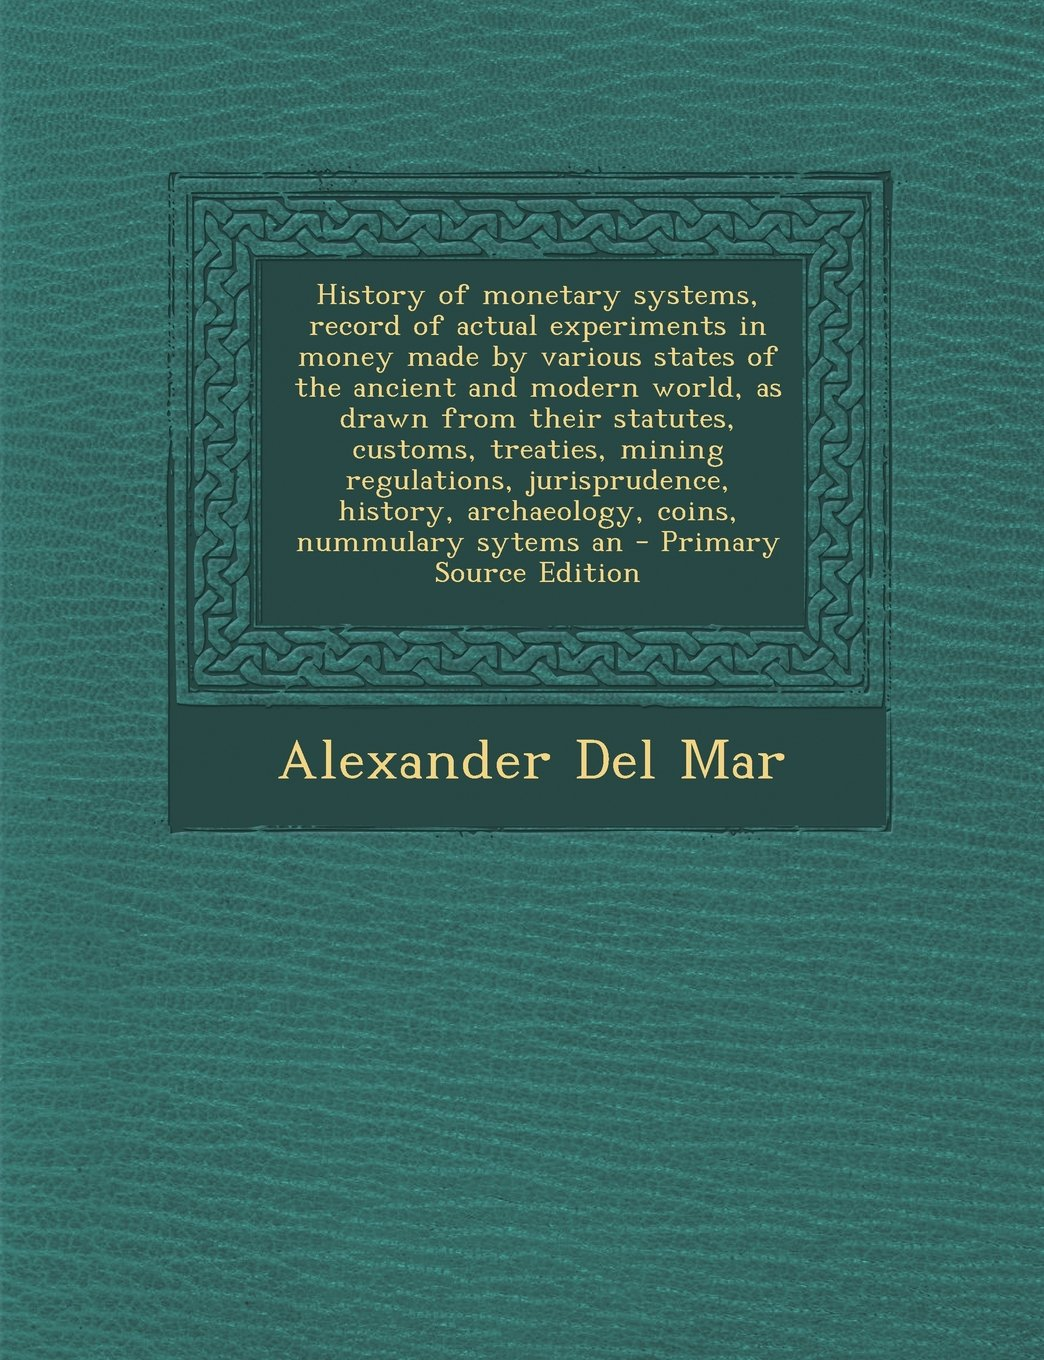 Download History of Monetary Systems, Record of Actual Experiments in Money Made by Various States of the Ancient and Modern World, as Drawn from Their Statute PDF